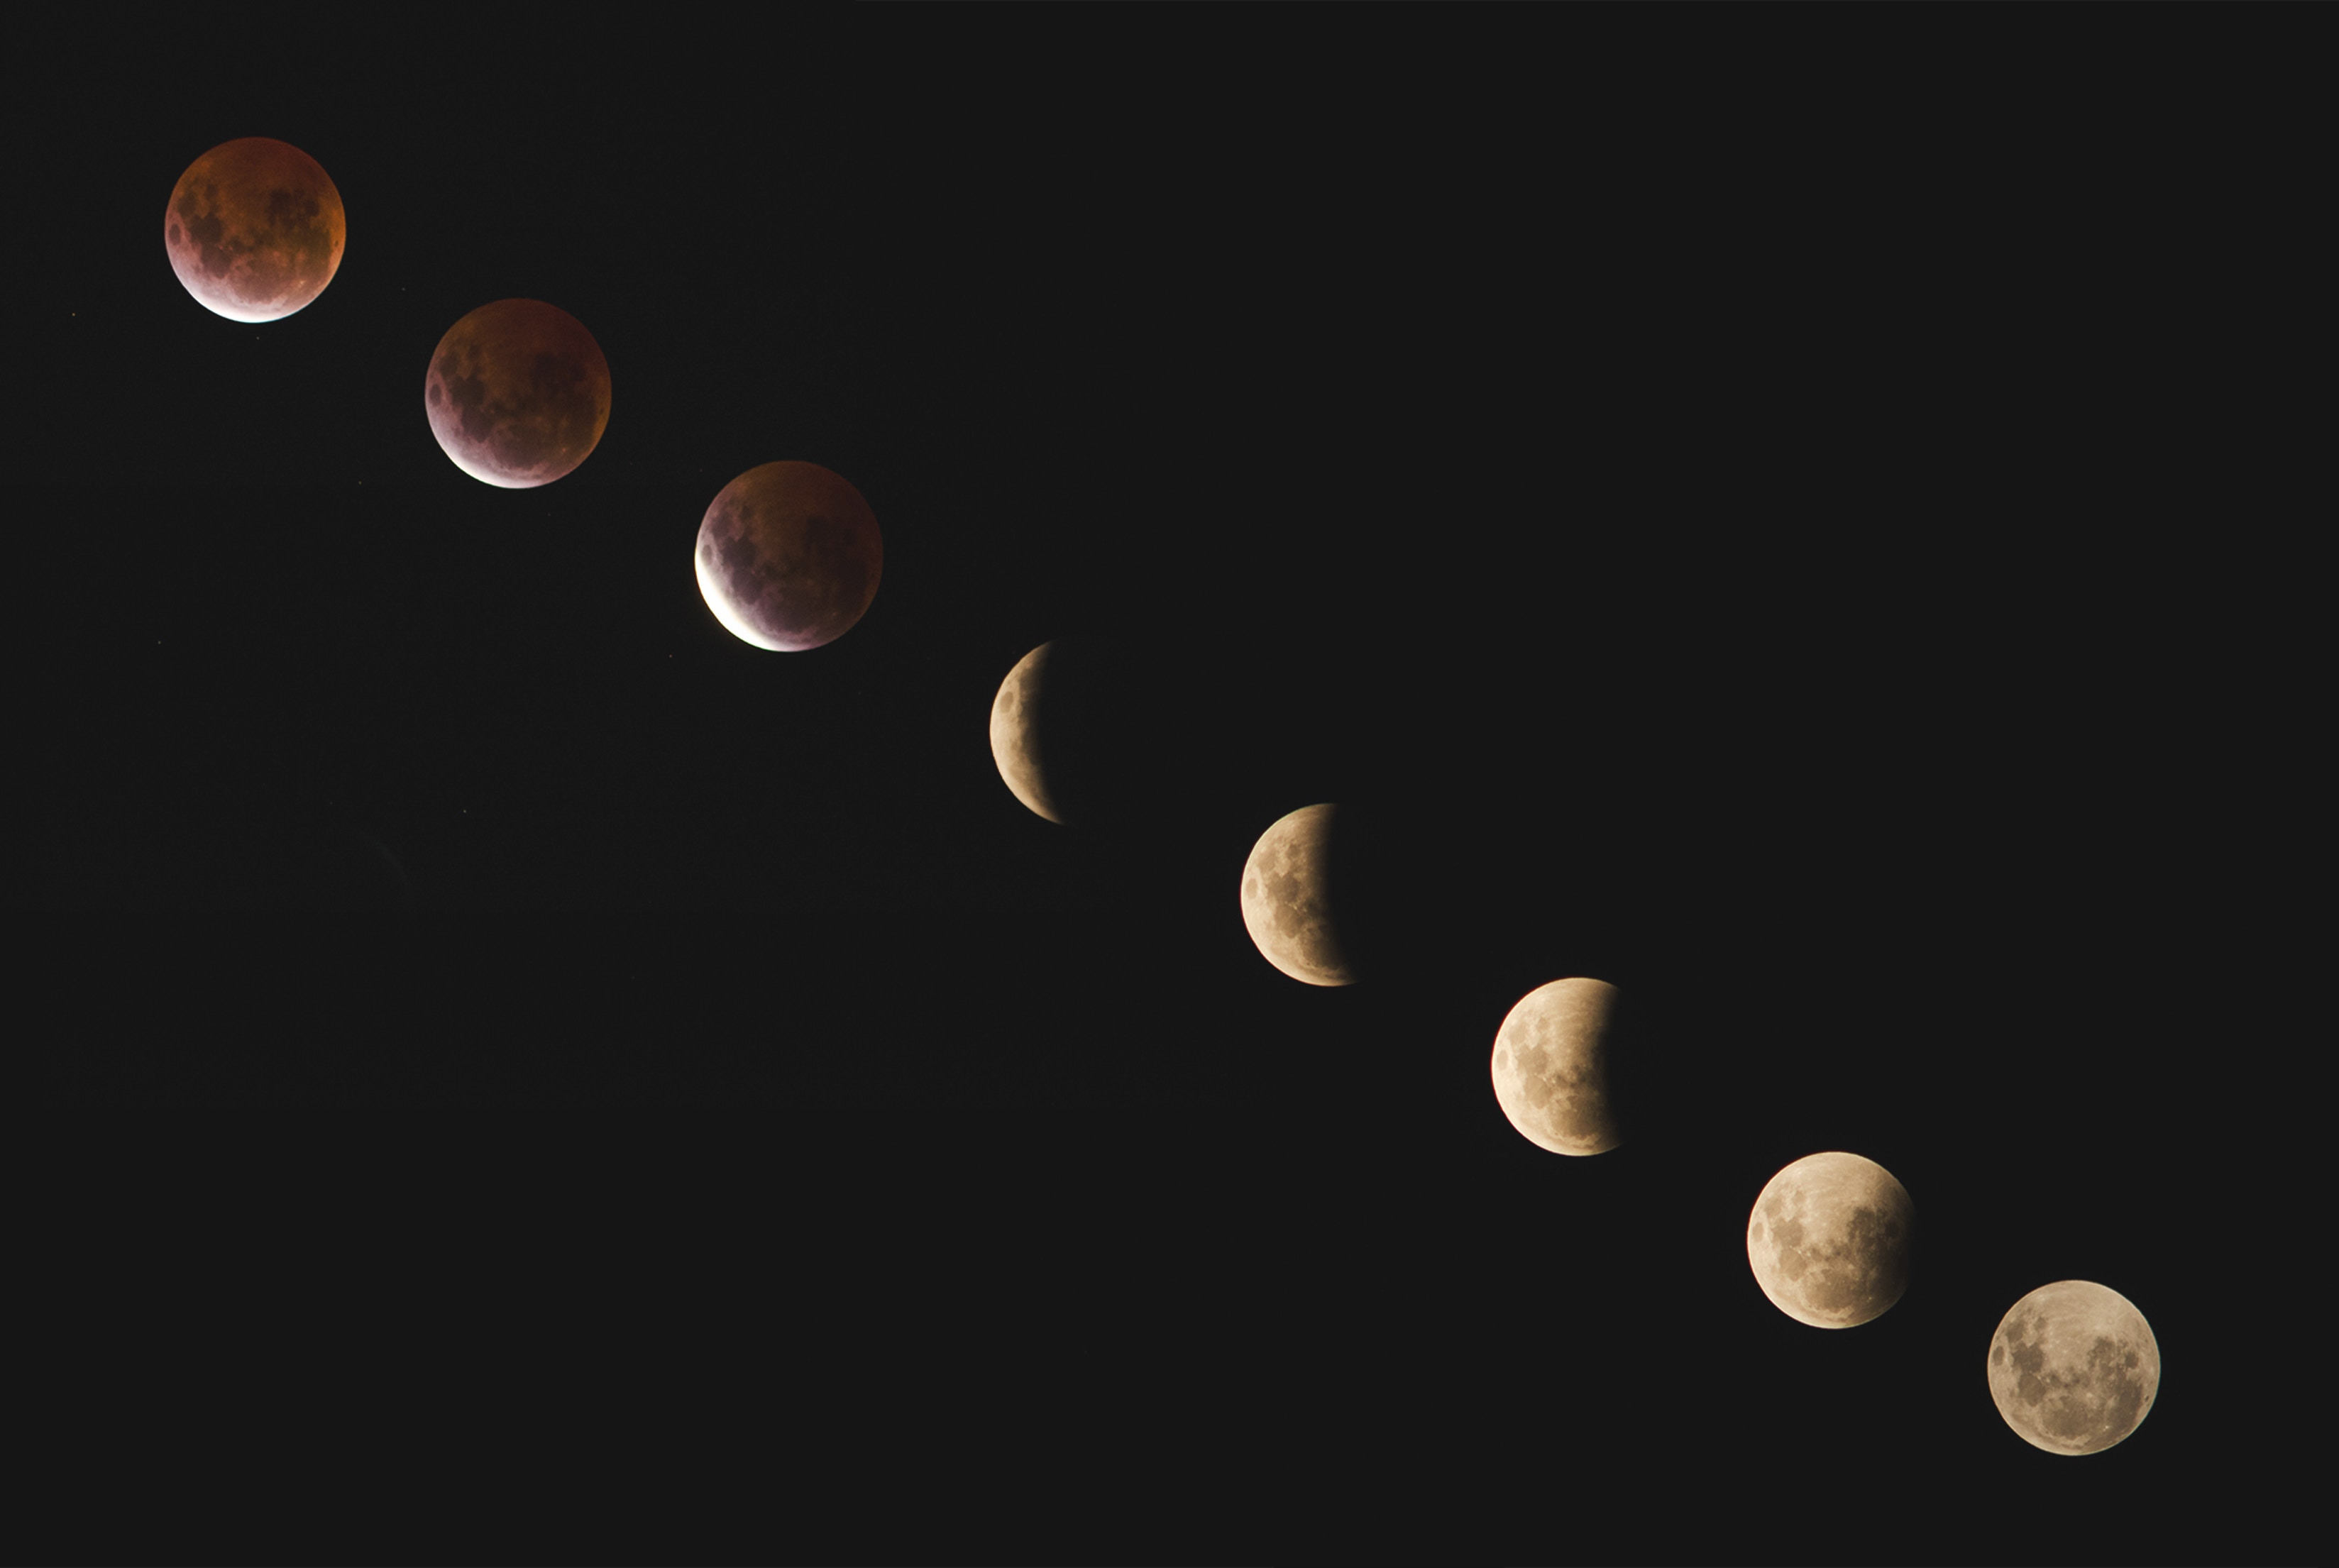 A picture of the moon phases by Linda Xu on Unsplash